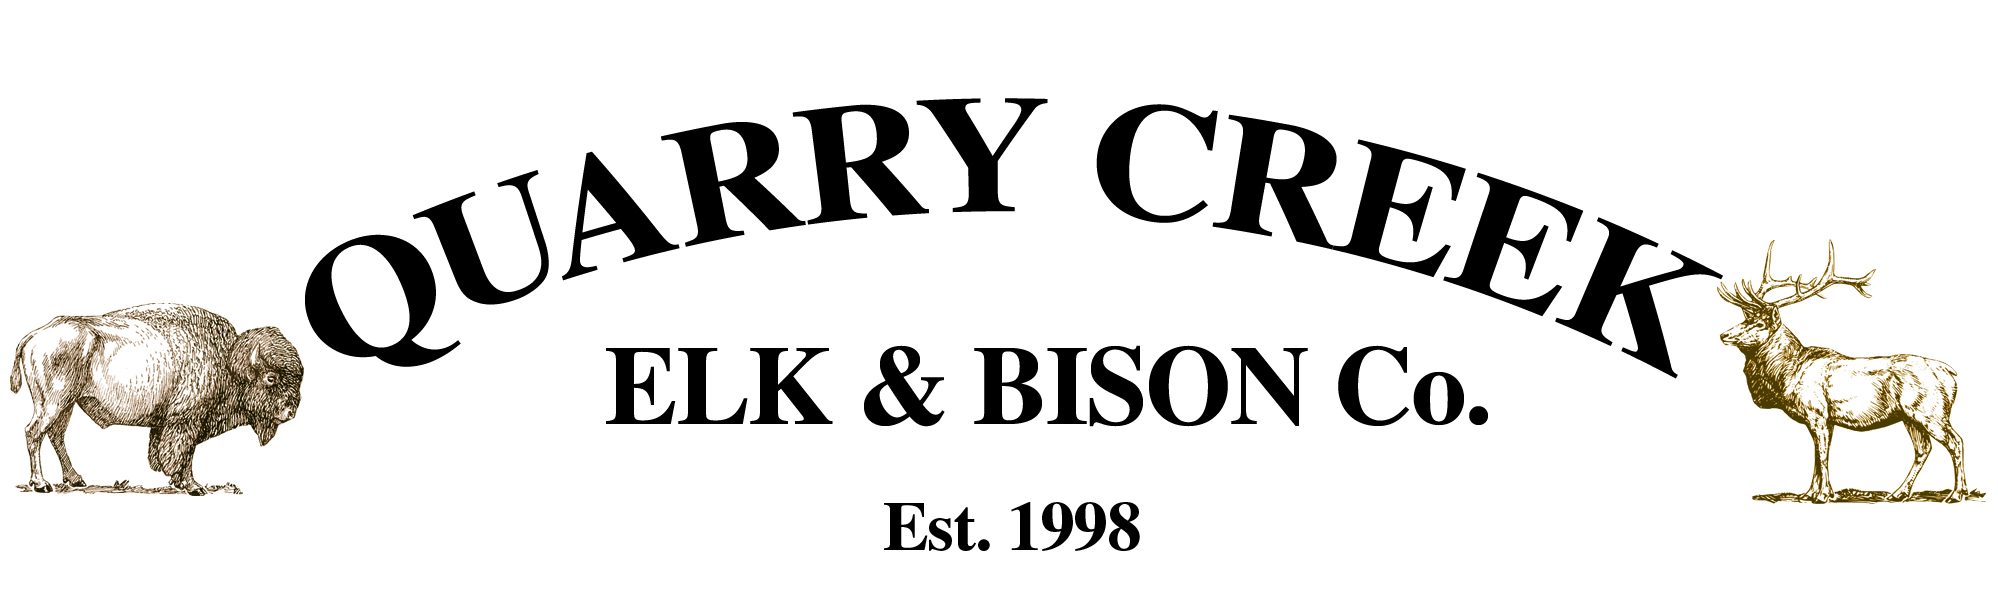 Quarry Creek Elk & Bison Co., LLC